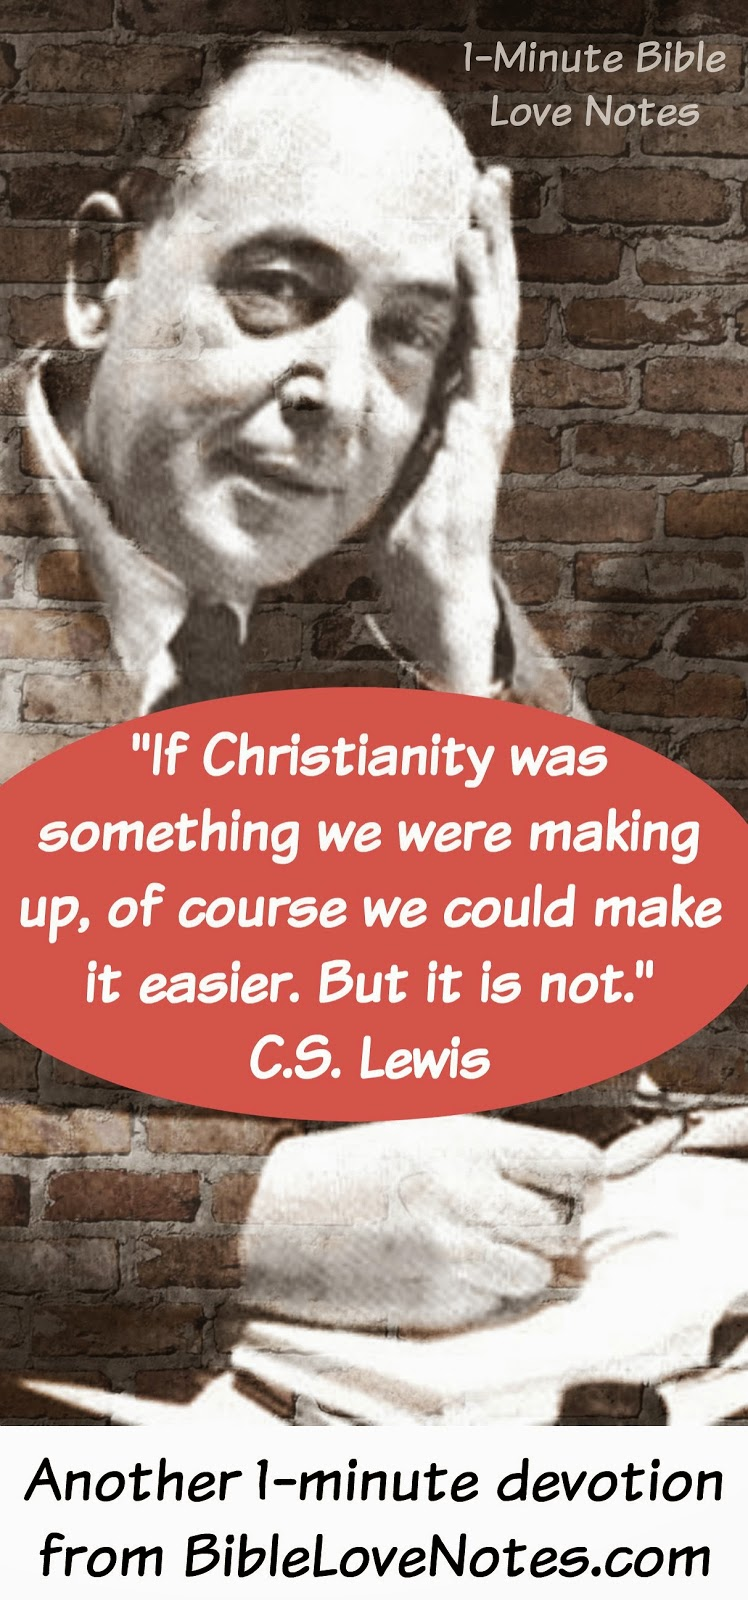 C.S. Lewis, If Christianity was something we were making up of course we could make it easier